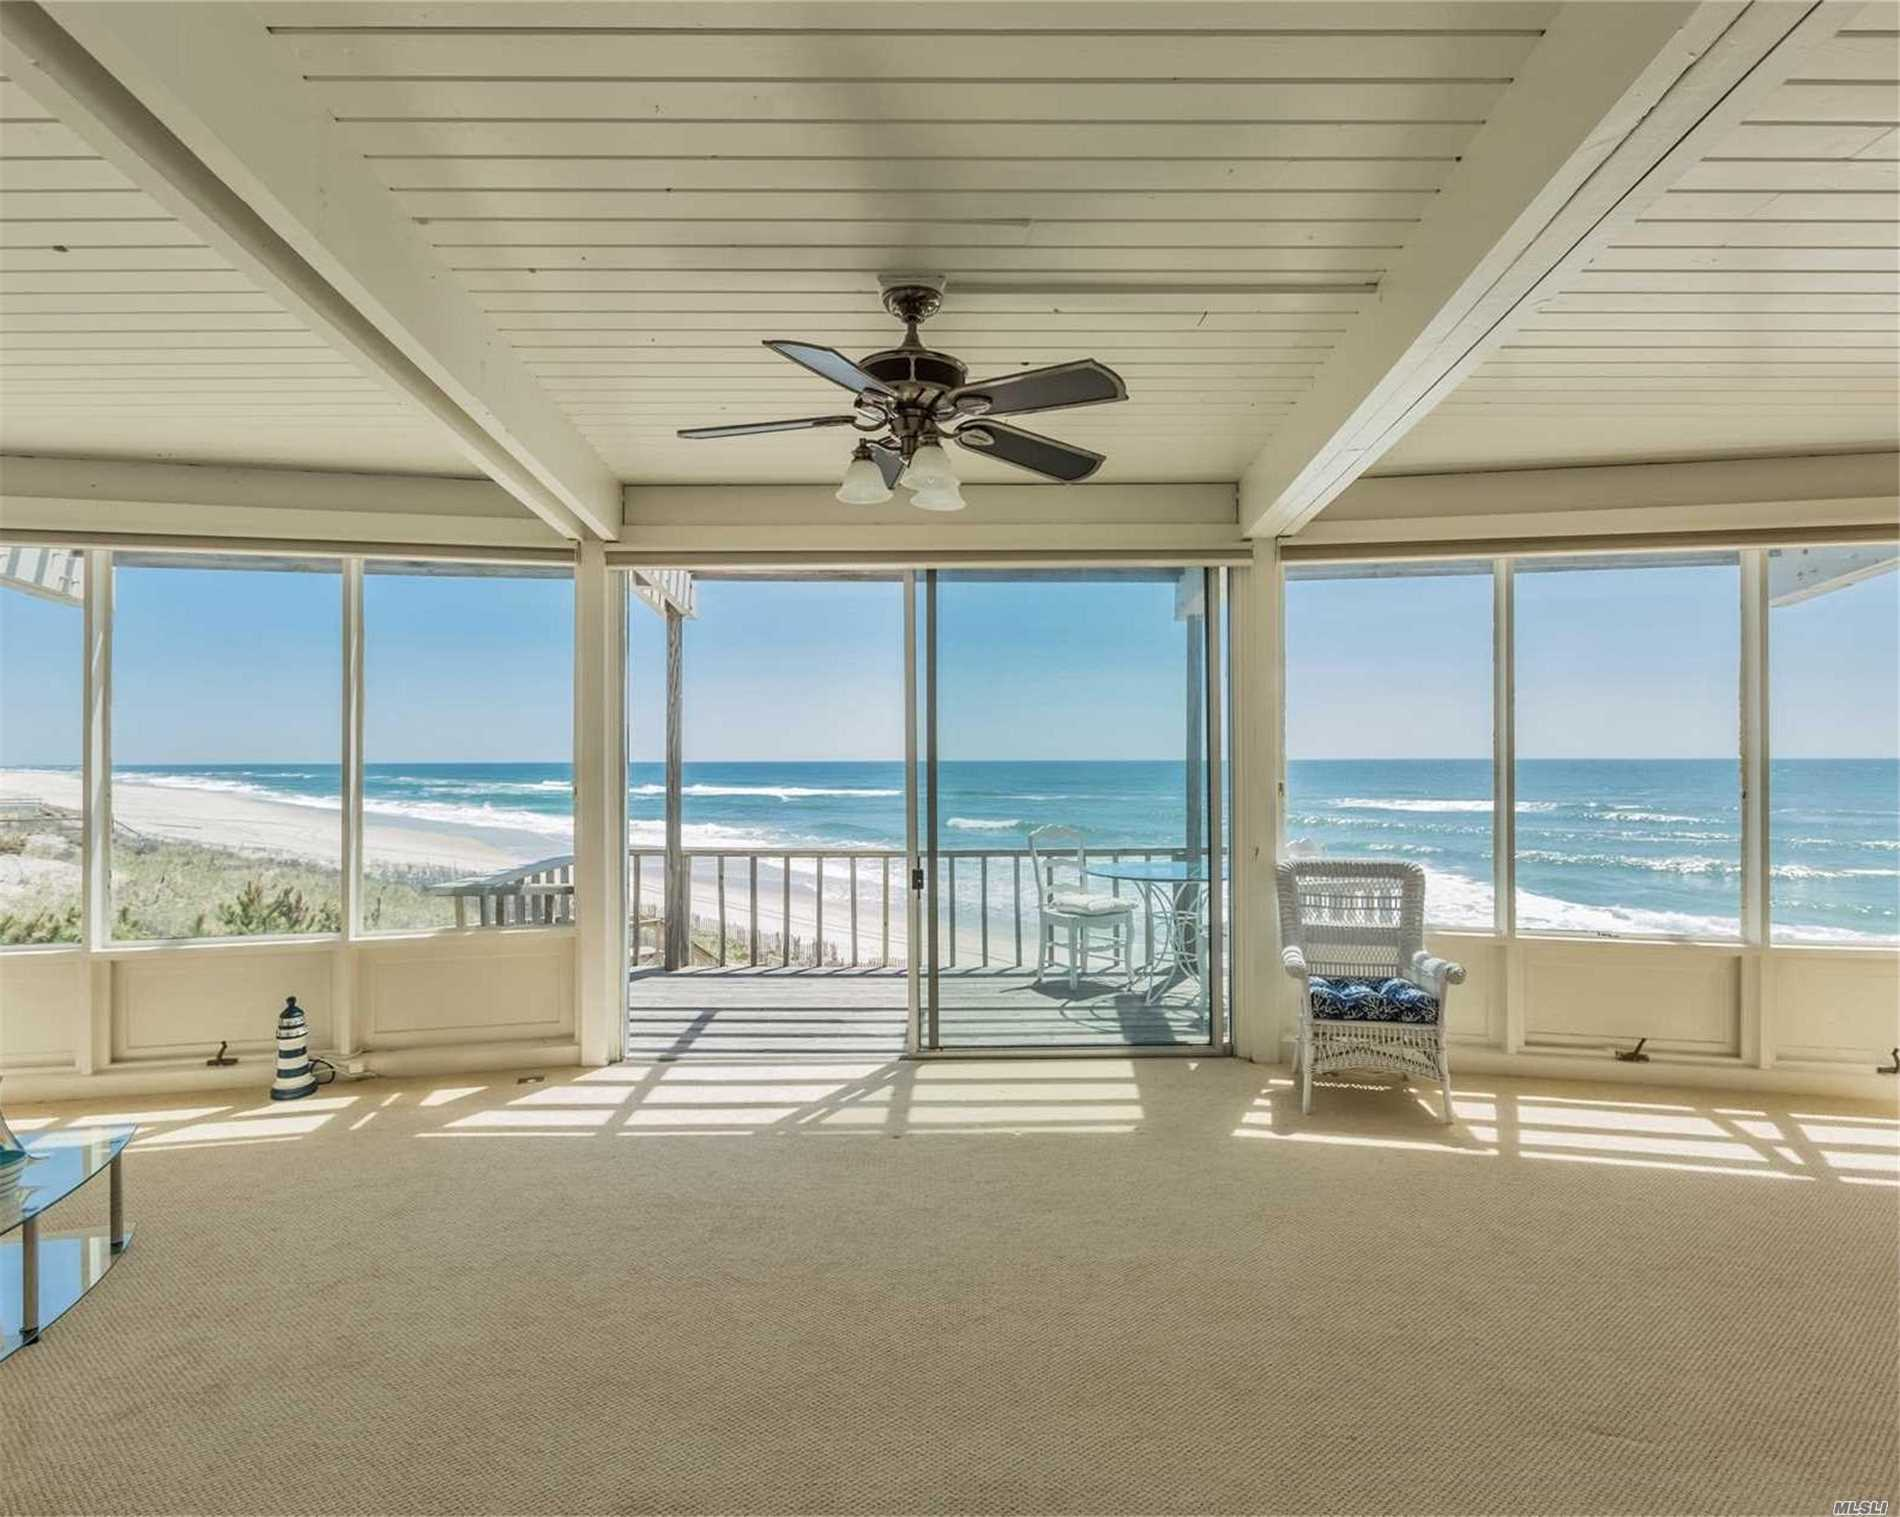 Property for sale at 101 Dune Rd, East Quogue,  NY 11942